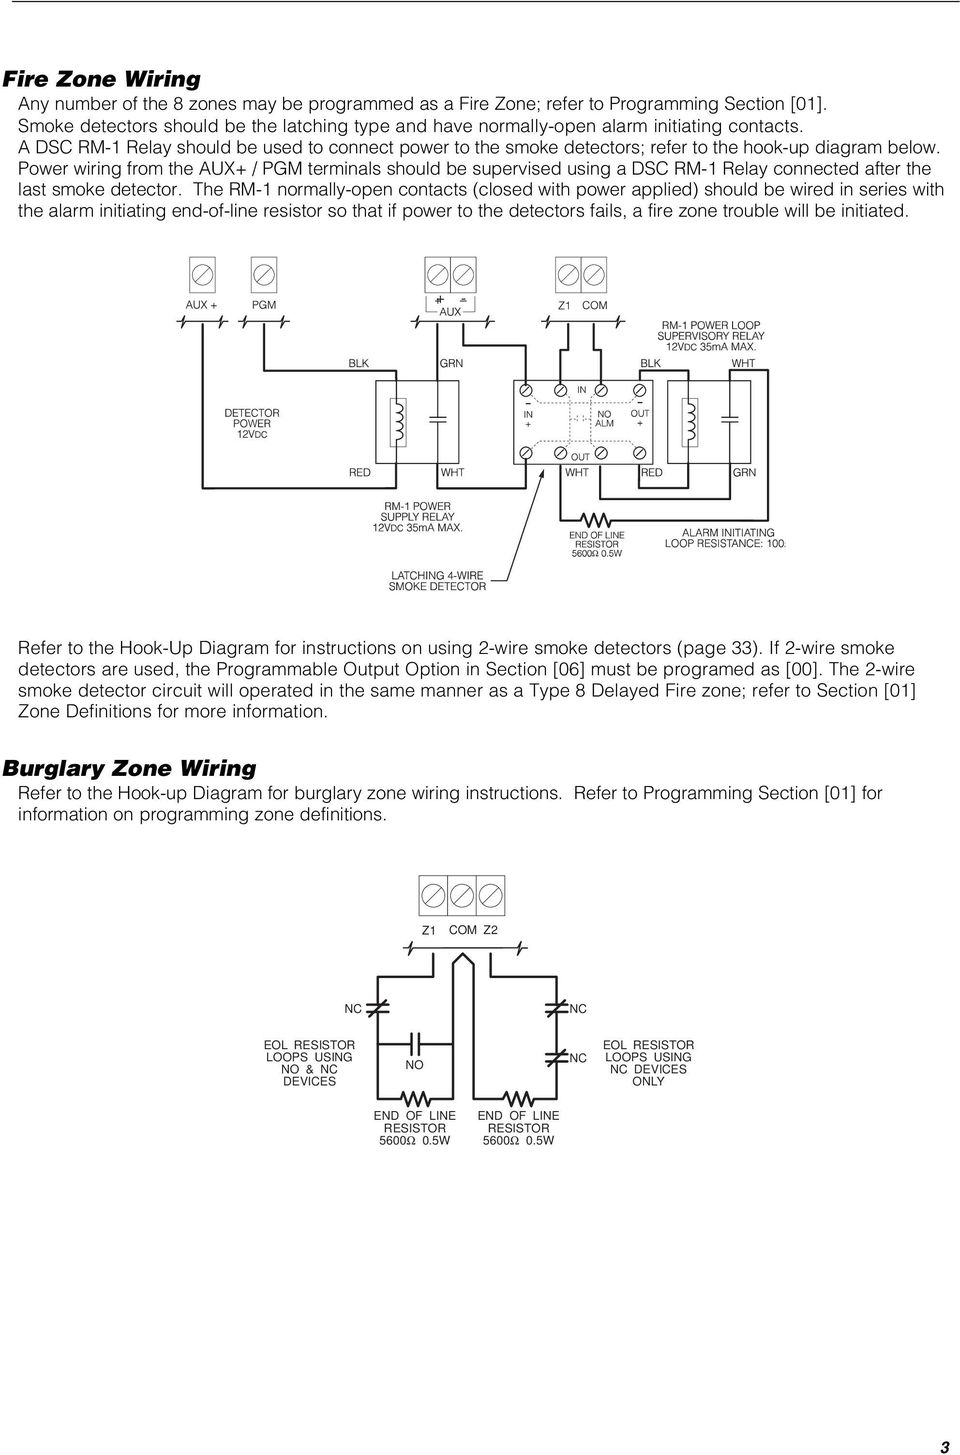 A DSC RM-1 Relay should be used to connect power to the smoke detectors; refer to the hook-up diagram below.